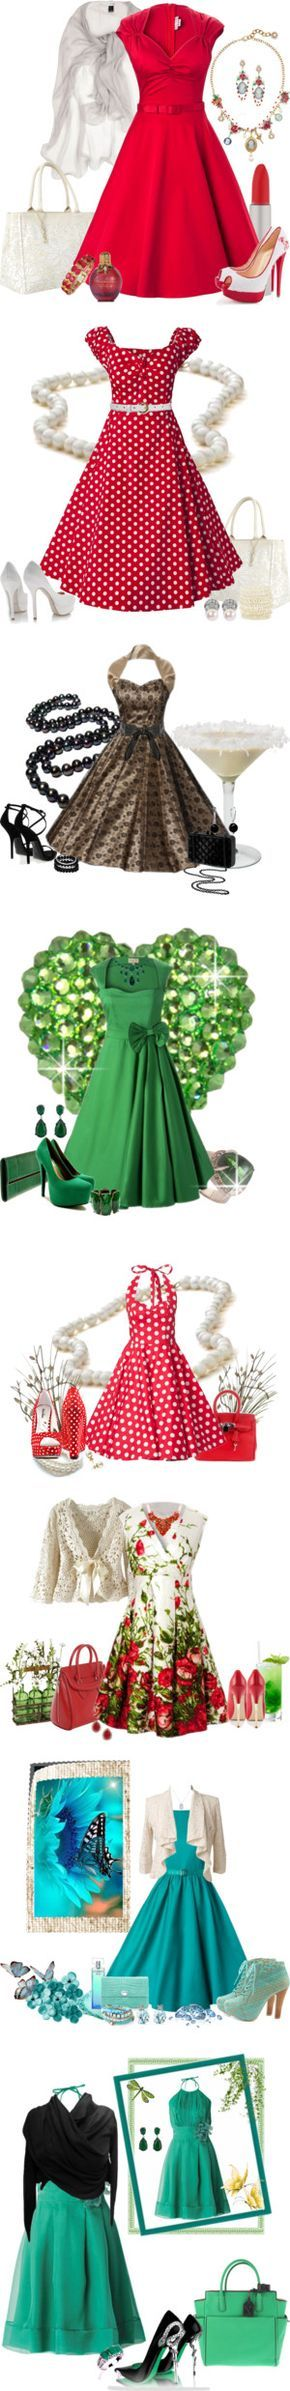 """50s inspired outfits! """"Vestidos Rodados I"""" by sil-engler on Polyvore"""